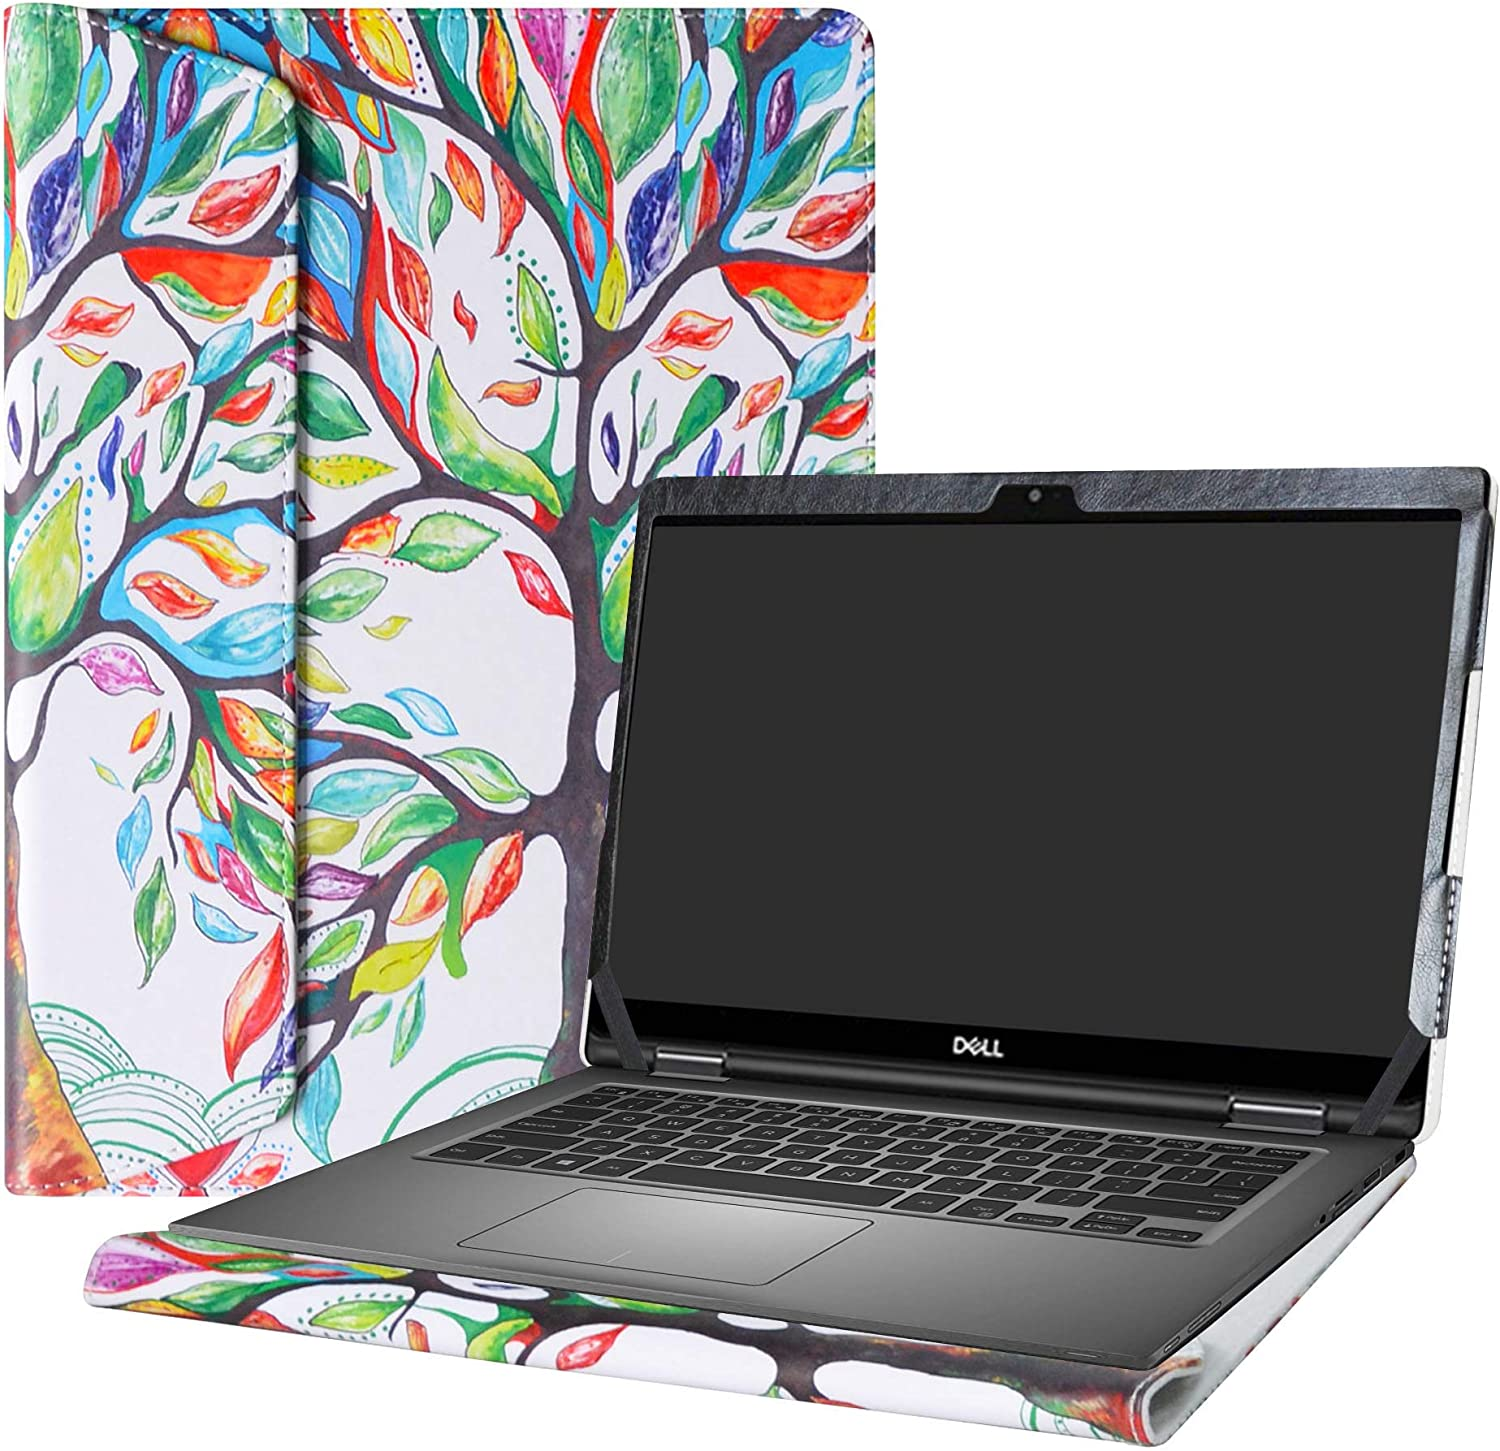 """Alapmk Protective Case Cover for 13.3"""" Dell Latitude 13 7389 7390 2-in-1 Series Laptop(Warning:Not fit Latitude 13 7350 2-in-1/Latitude 13 7390/Latitude 13 7380 7370),Love Tree"""